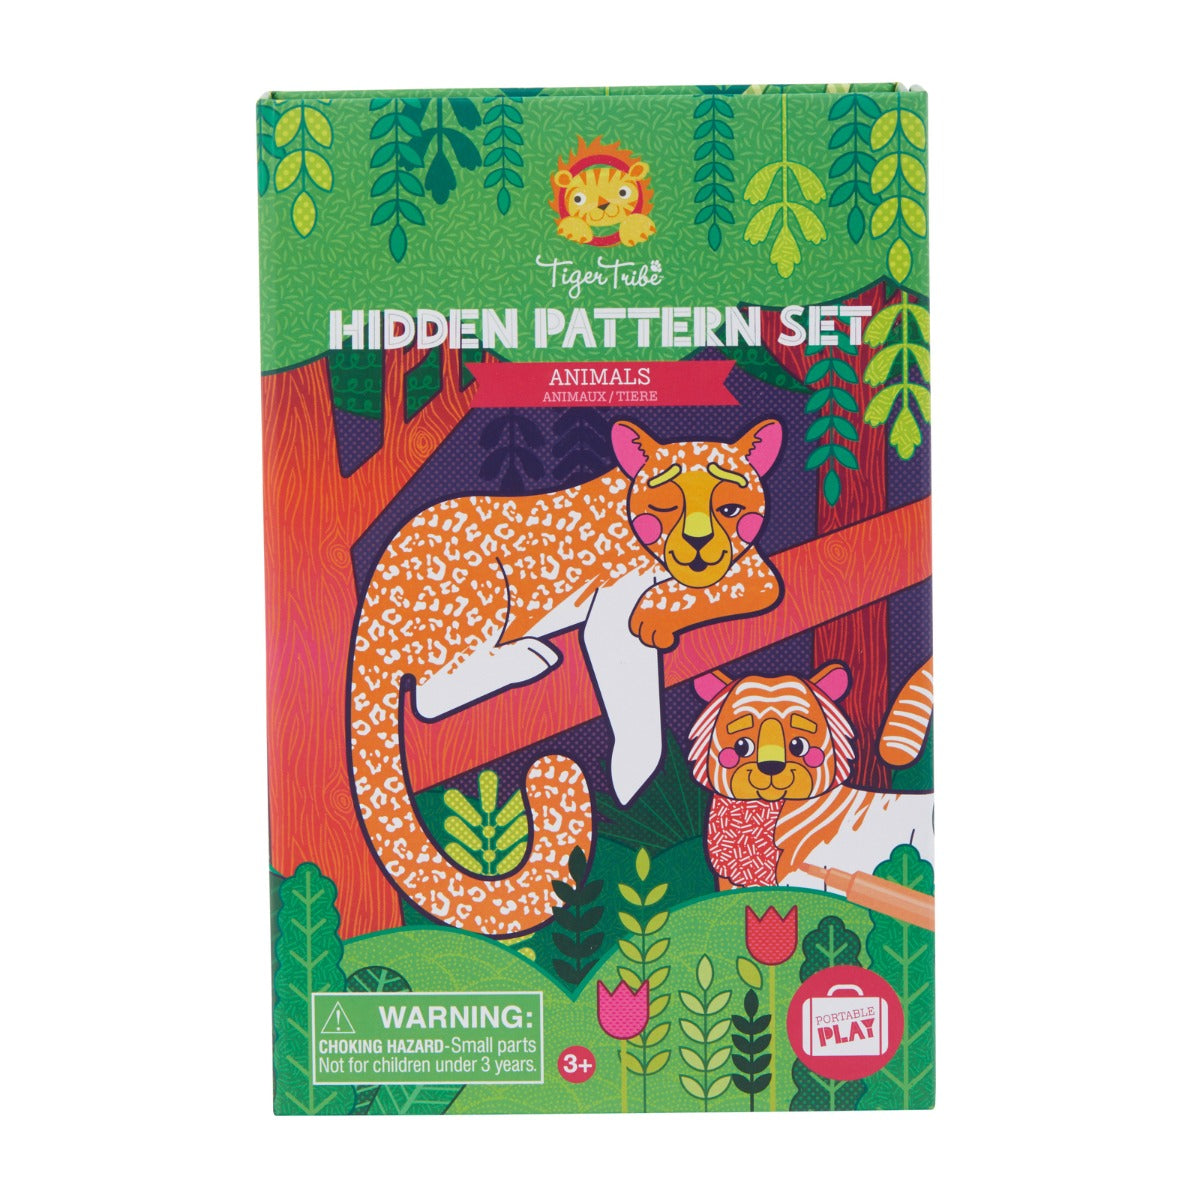 Tiger Tribe Pattern Set Animals in box